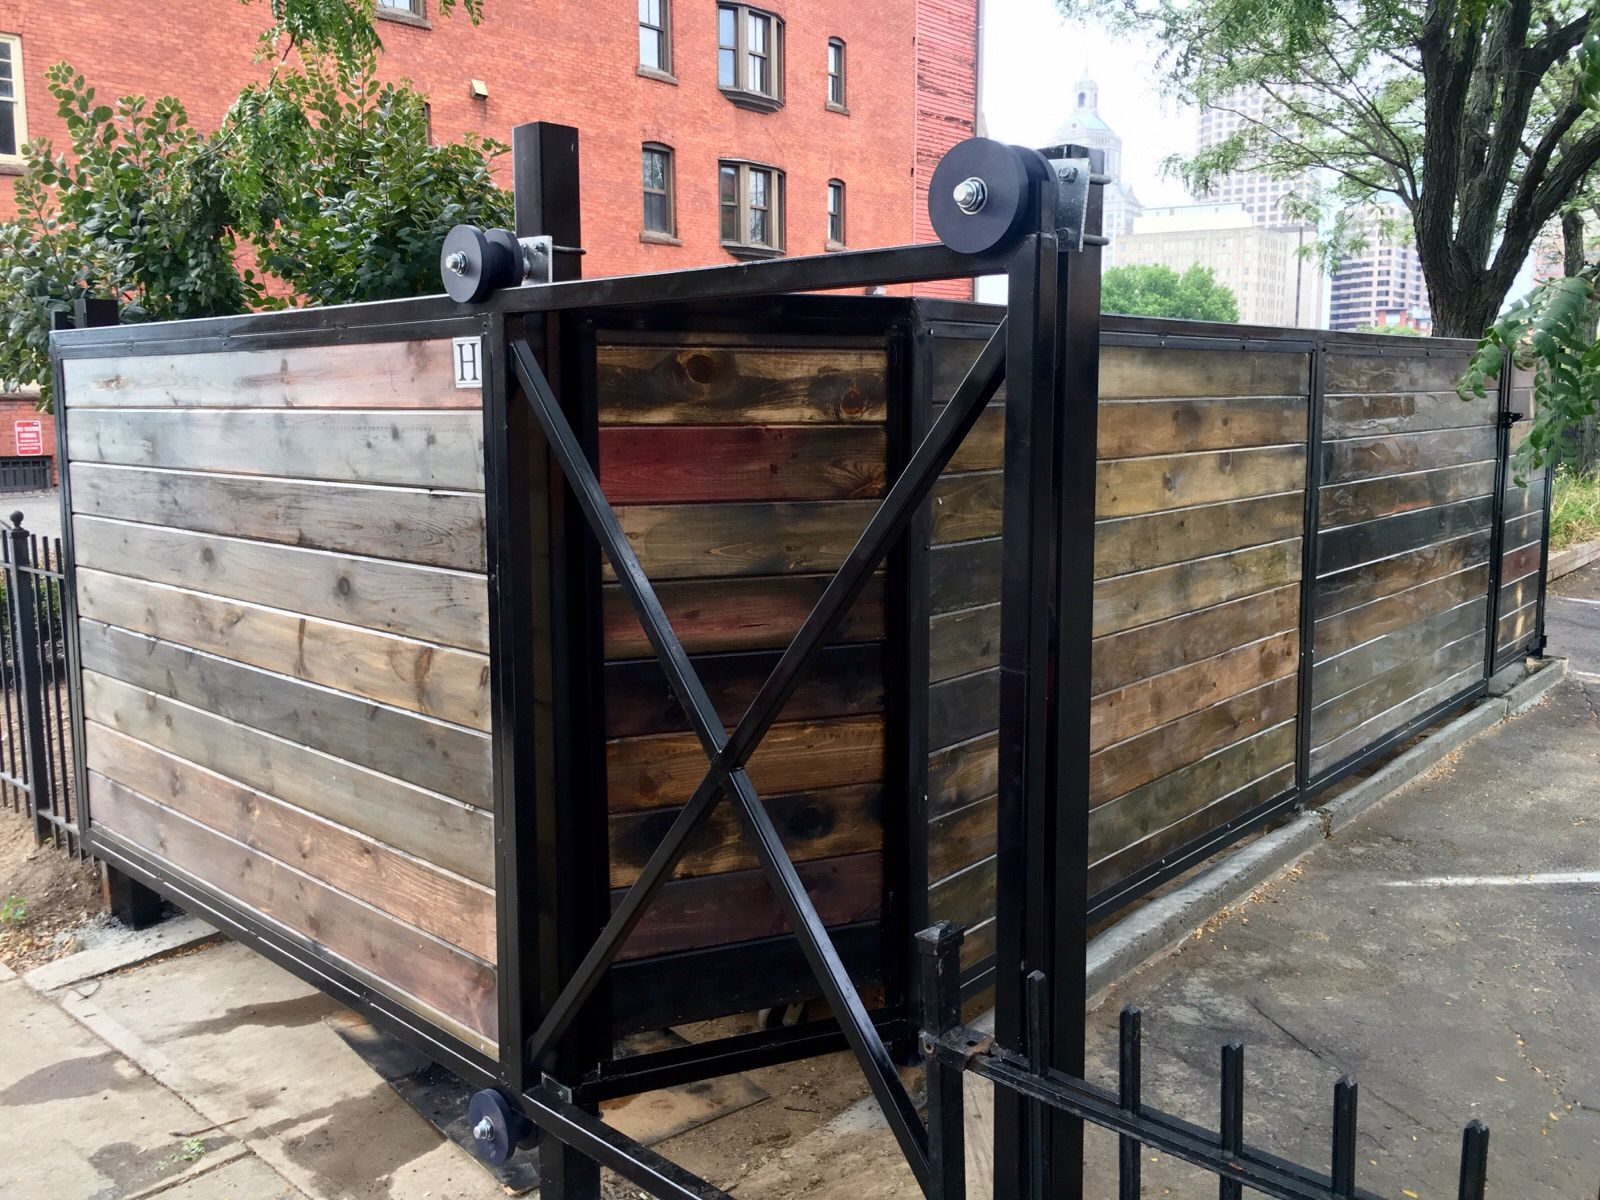 Dumpster Enclosure Made By Hartford Fence Co Architecture Monticello Enclosure